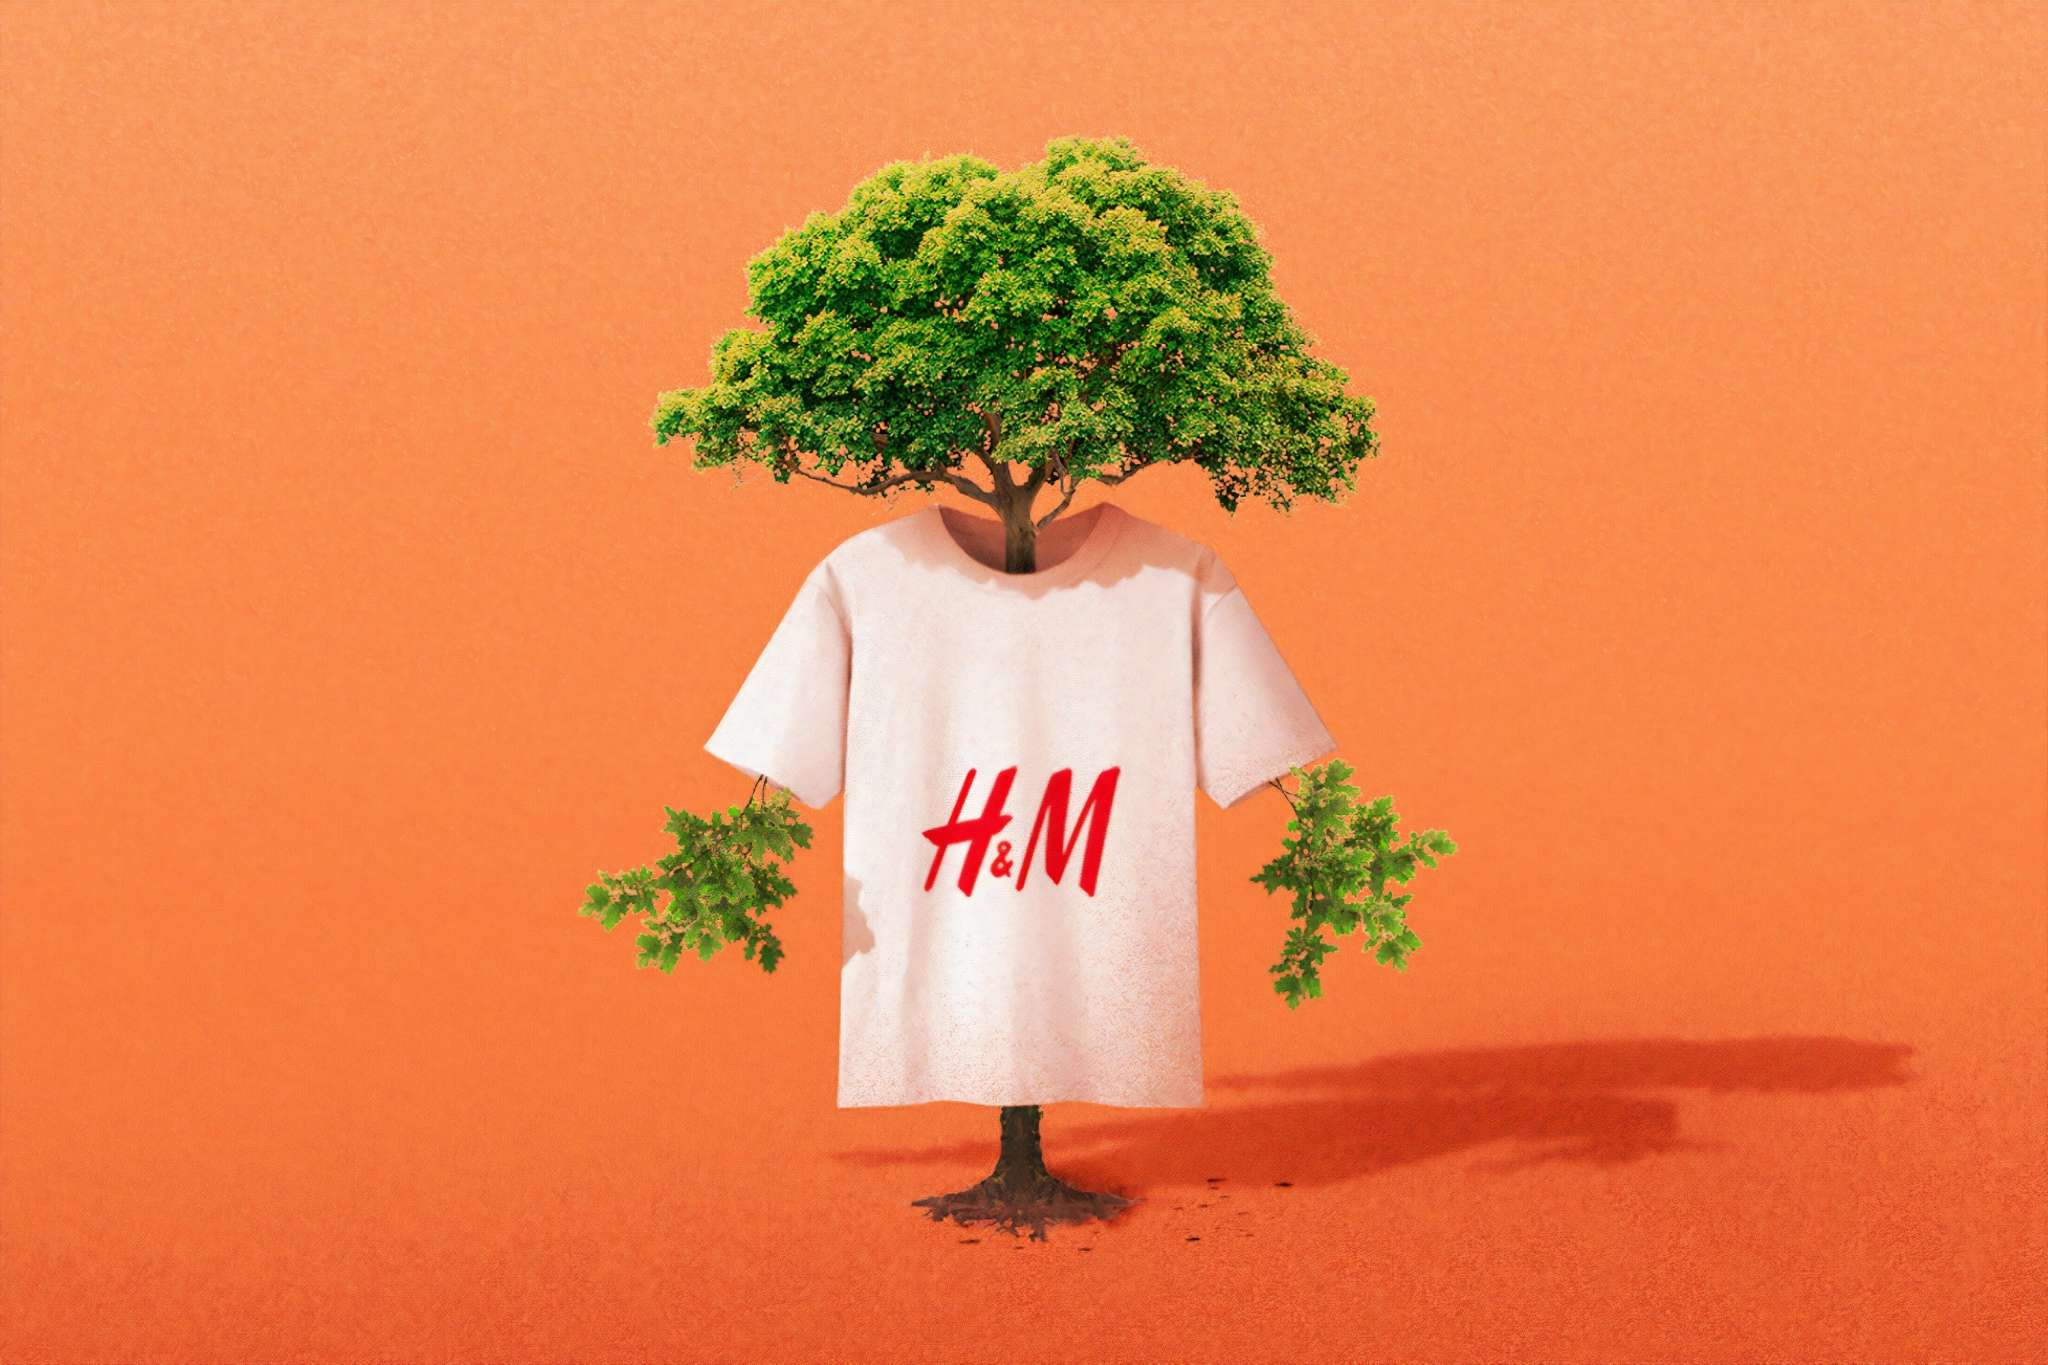 H&M quand la fast fashion tue